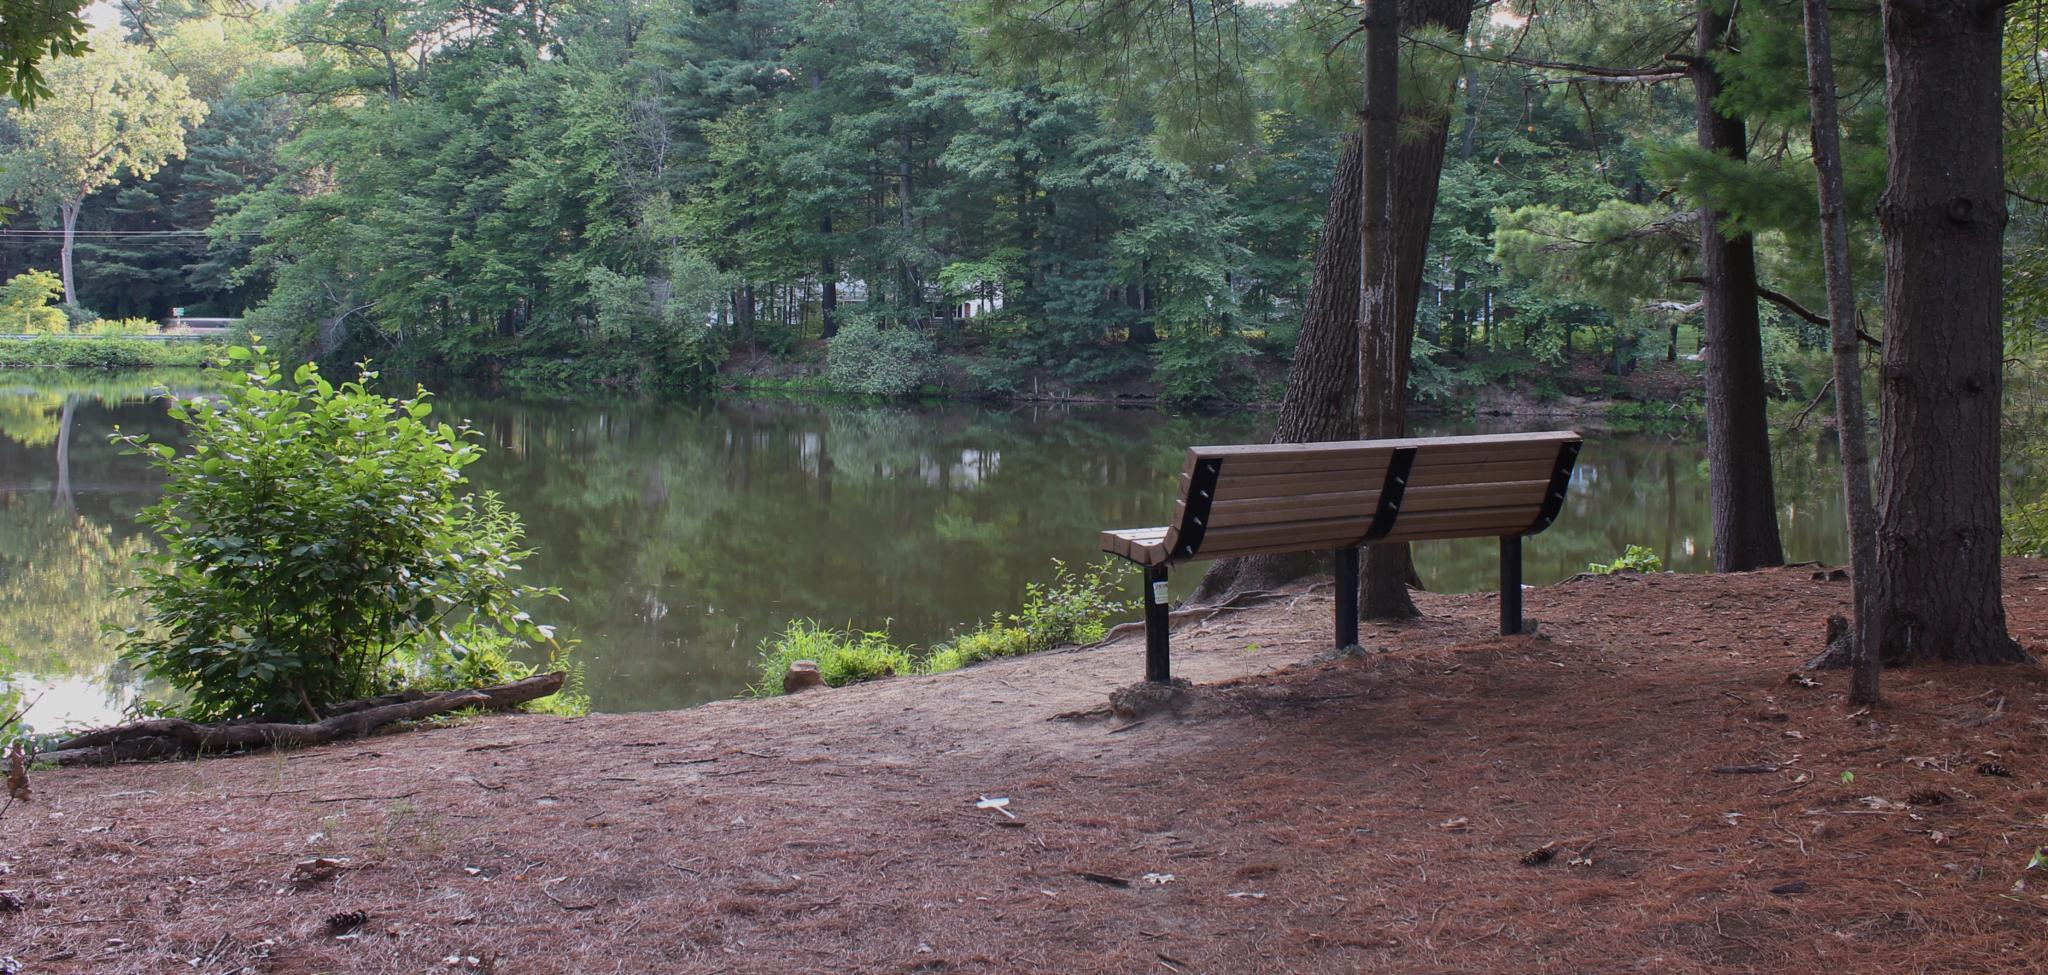 Relaxing at the Pond by debbie.lamontesnyder